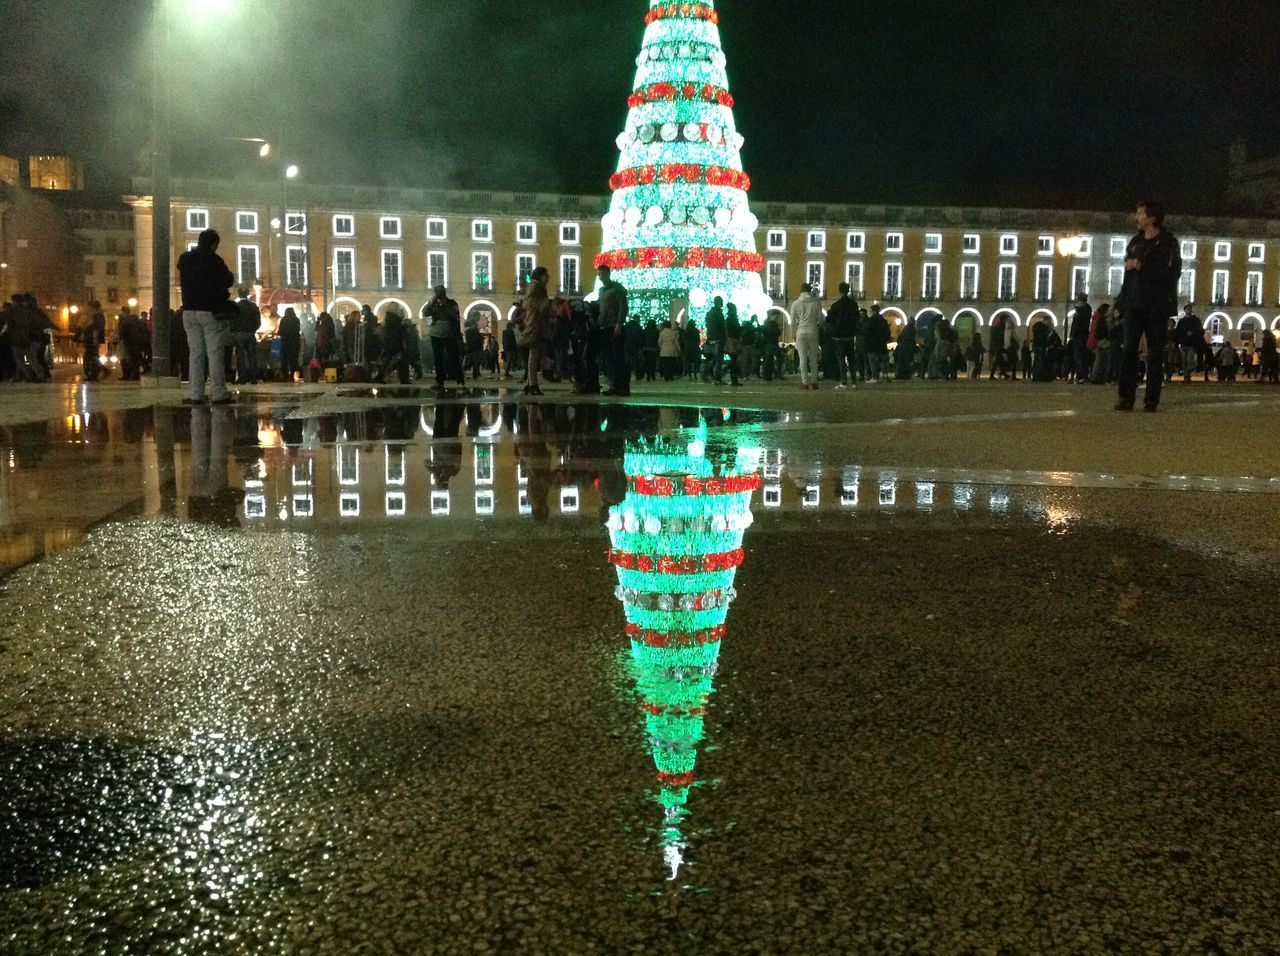 Pre-holiday streets filled with decorated spirit Architecture Decorations Lights In The Dark Lisbon - Portugal Mirrored Reflection Night Lights Puddle Reflections Reflected Holidays,